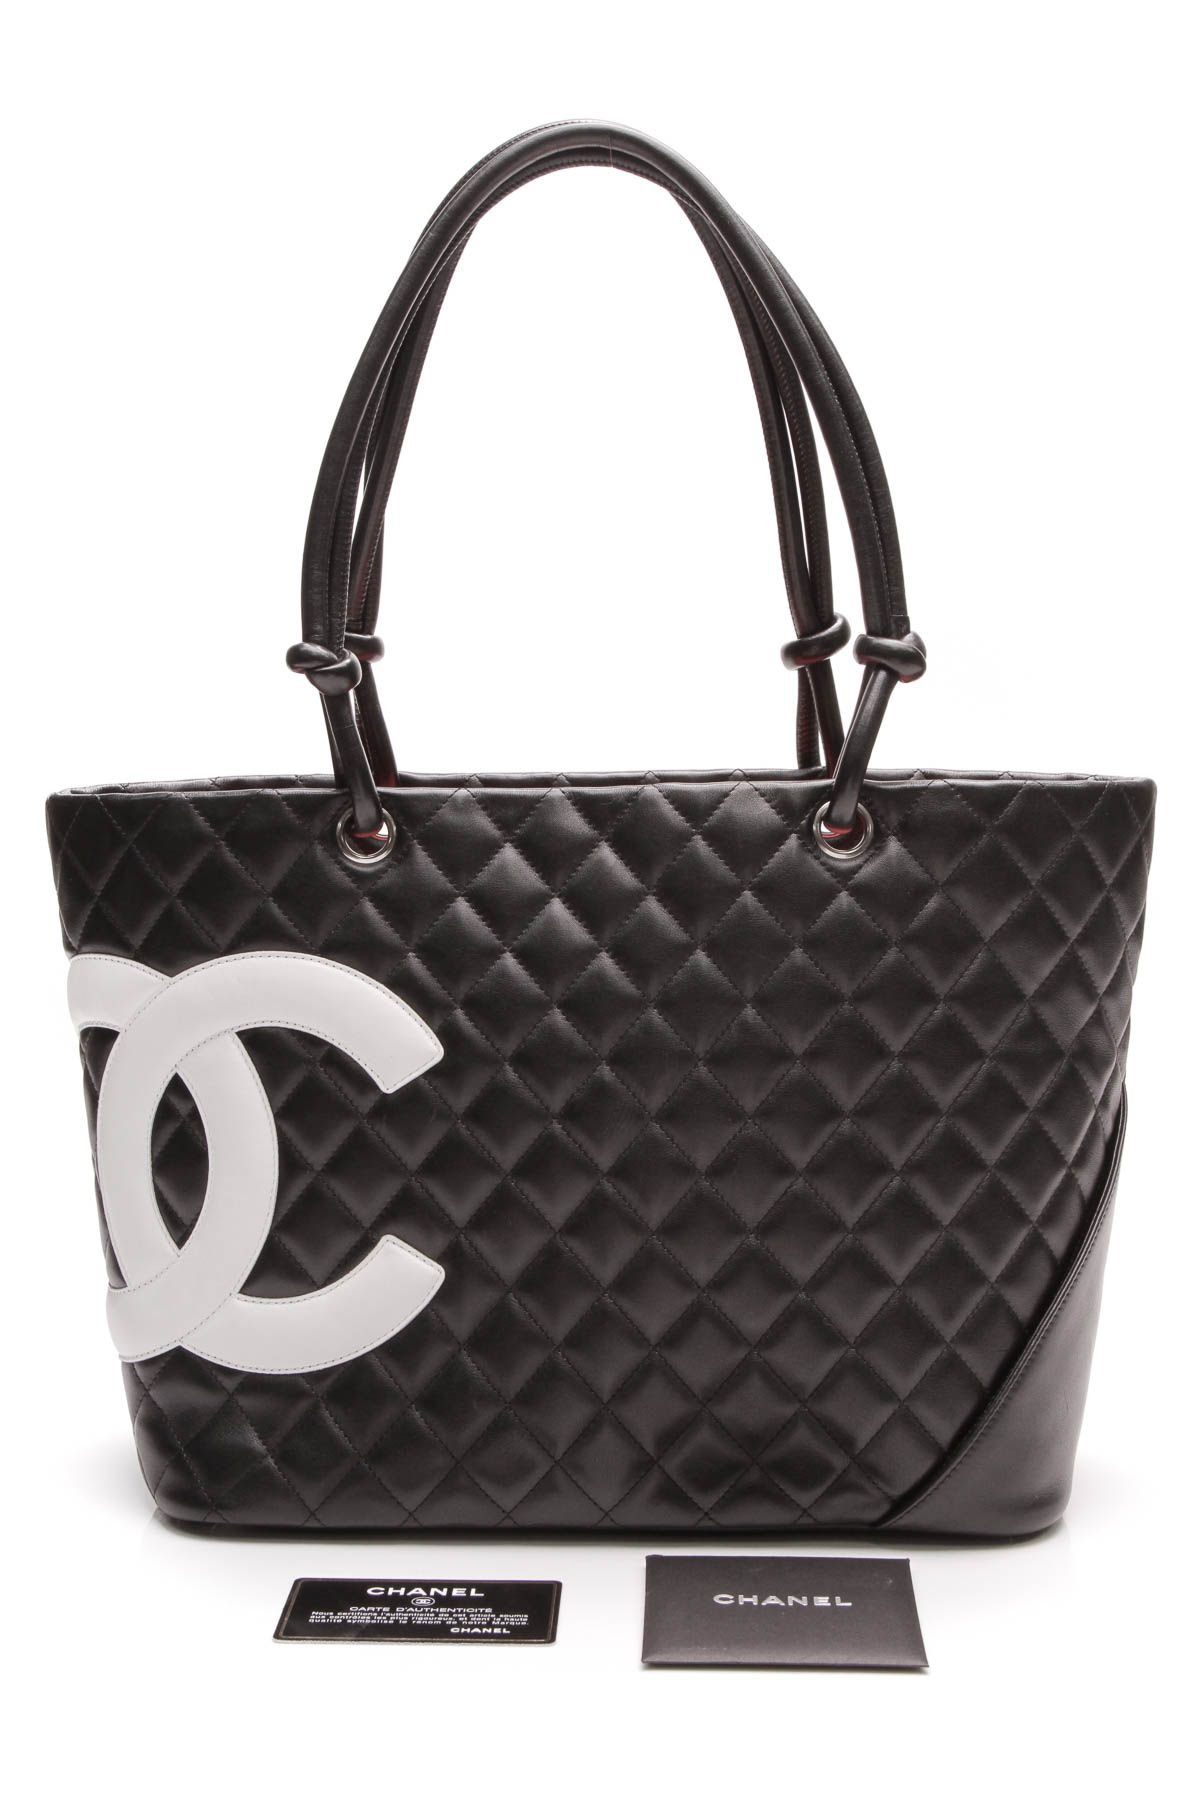 7044000dbf5 The Chanel Cambon tote bag is a classic and a must-have! . . .  chanel   chanelbag  chanelhandbag  handbag  blackbag  blackhandbag  cc  cclogo   designer ...